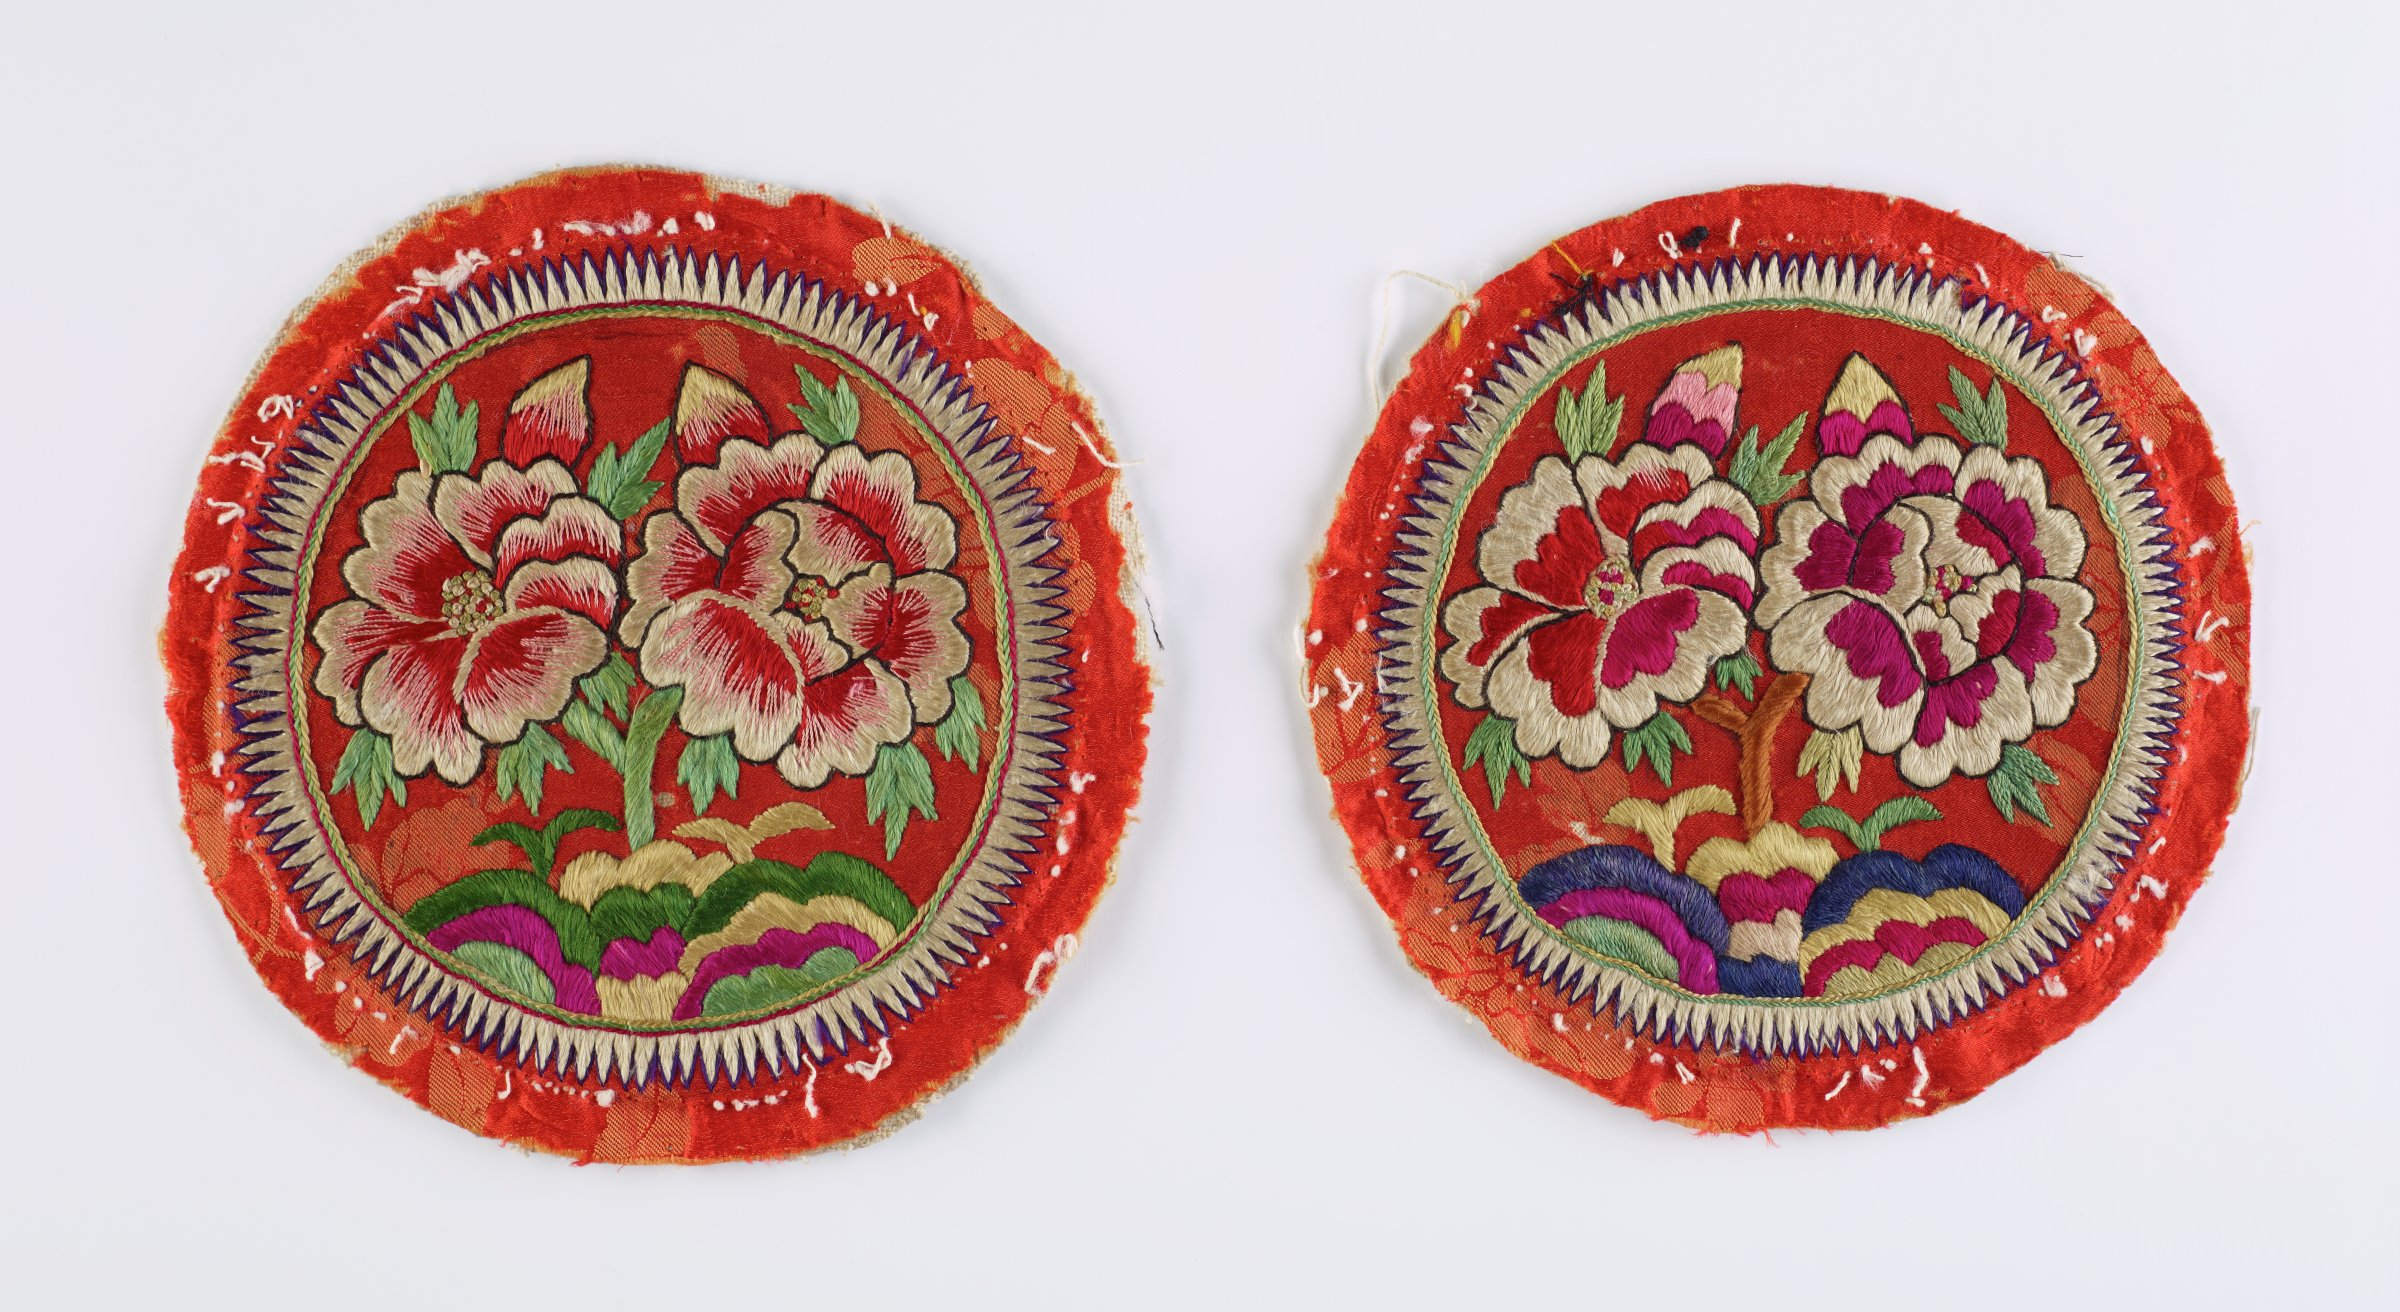 Pair of round pillow ends with embroidered Peony designs on an orange background